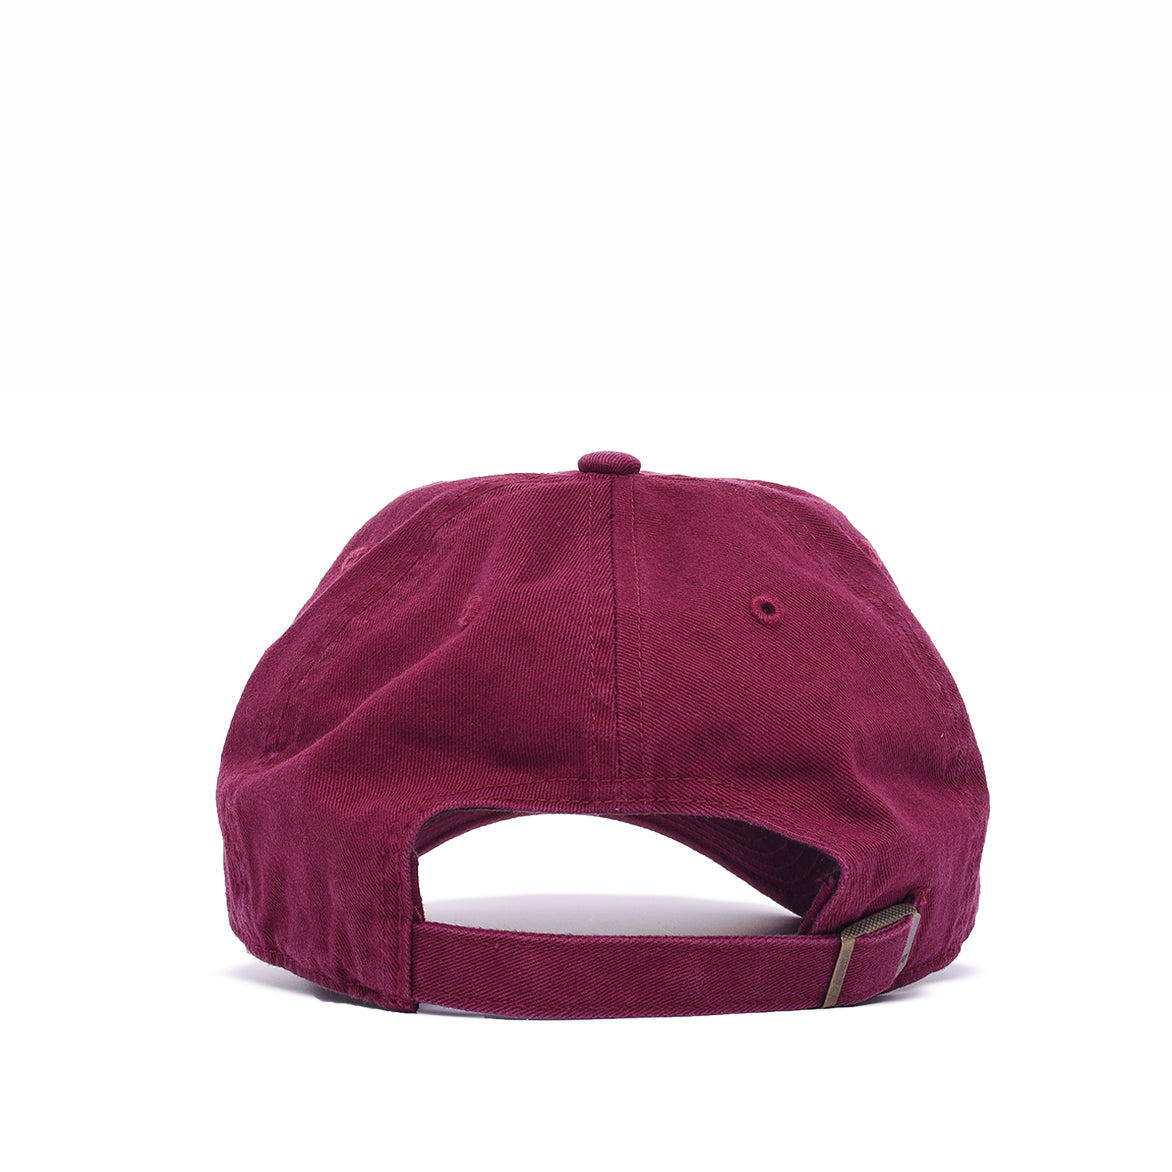 "PHILLIES CLEAN UP ""DAD HAT"" -  BURGUNDY"